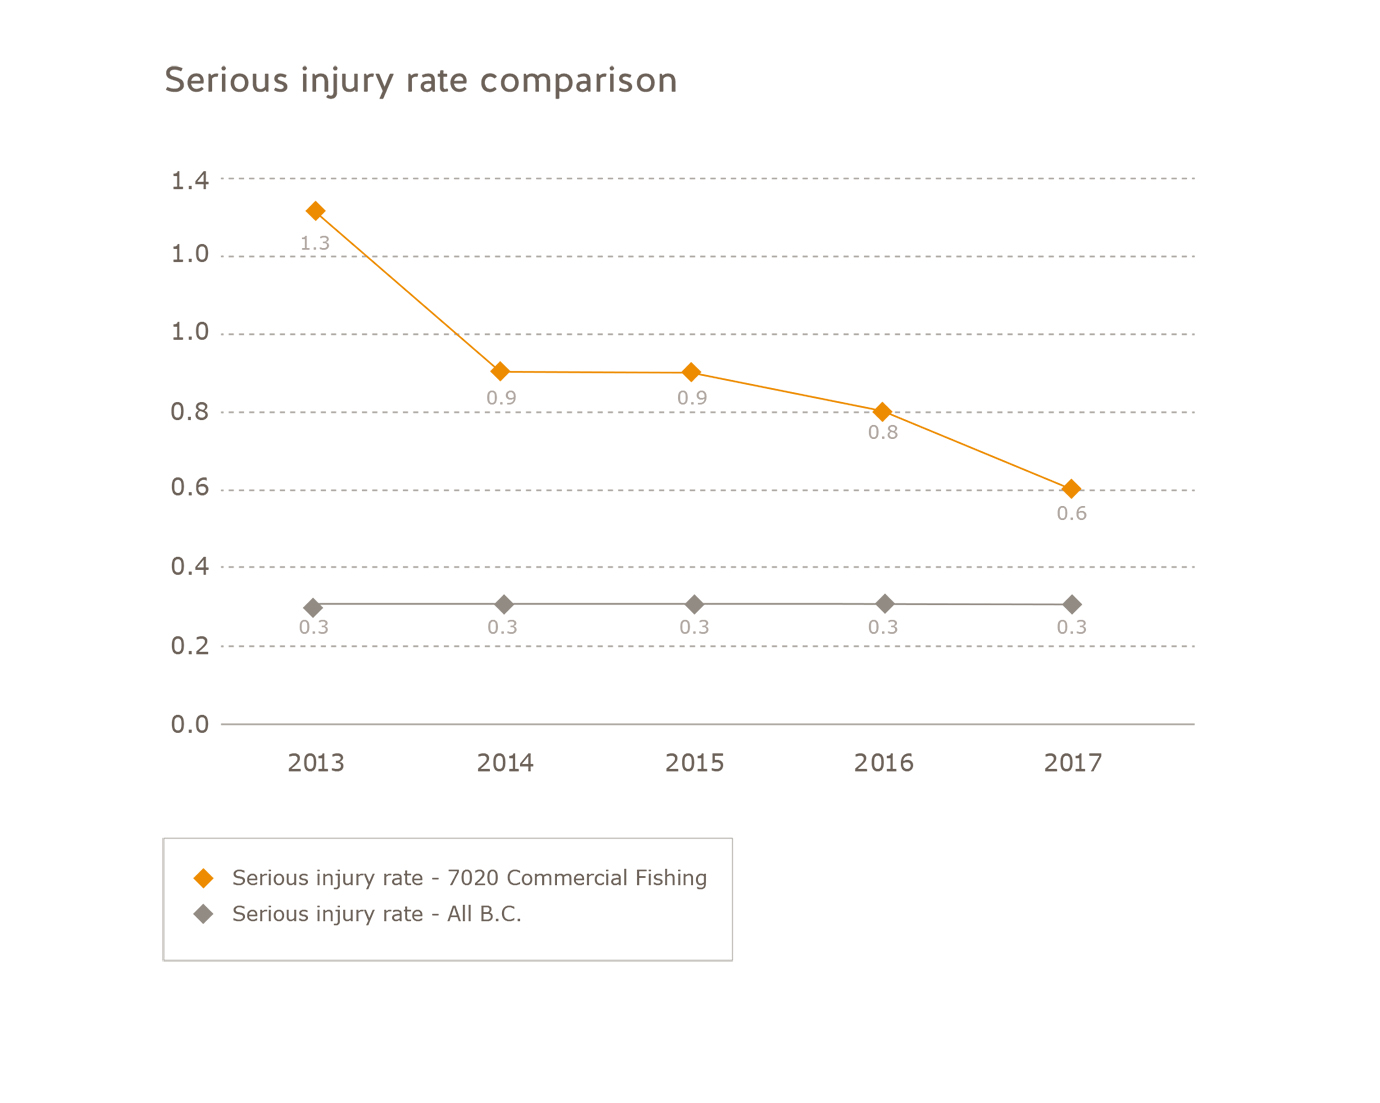 Serious injury rate comparison commercial fishing subsector 2013 to 2017. Commercial fishing: 2013 = 1.3, 2014 = 0.9, 2015 = 0.9, 2016 = 0.8, 2017 = 0.6. All of B.C.: 2013 = 0.3, 2014 = 0.3, 2015 = 0.3, 2016 = 0.3, 2017 = 0.3